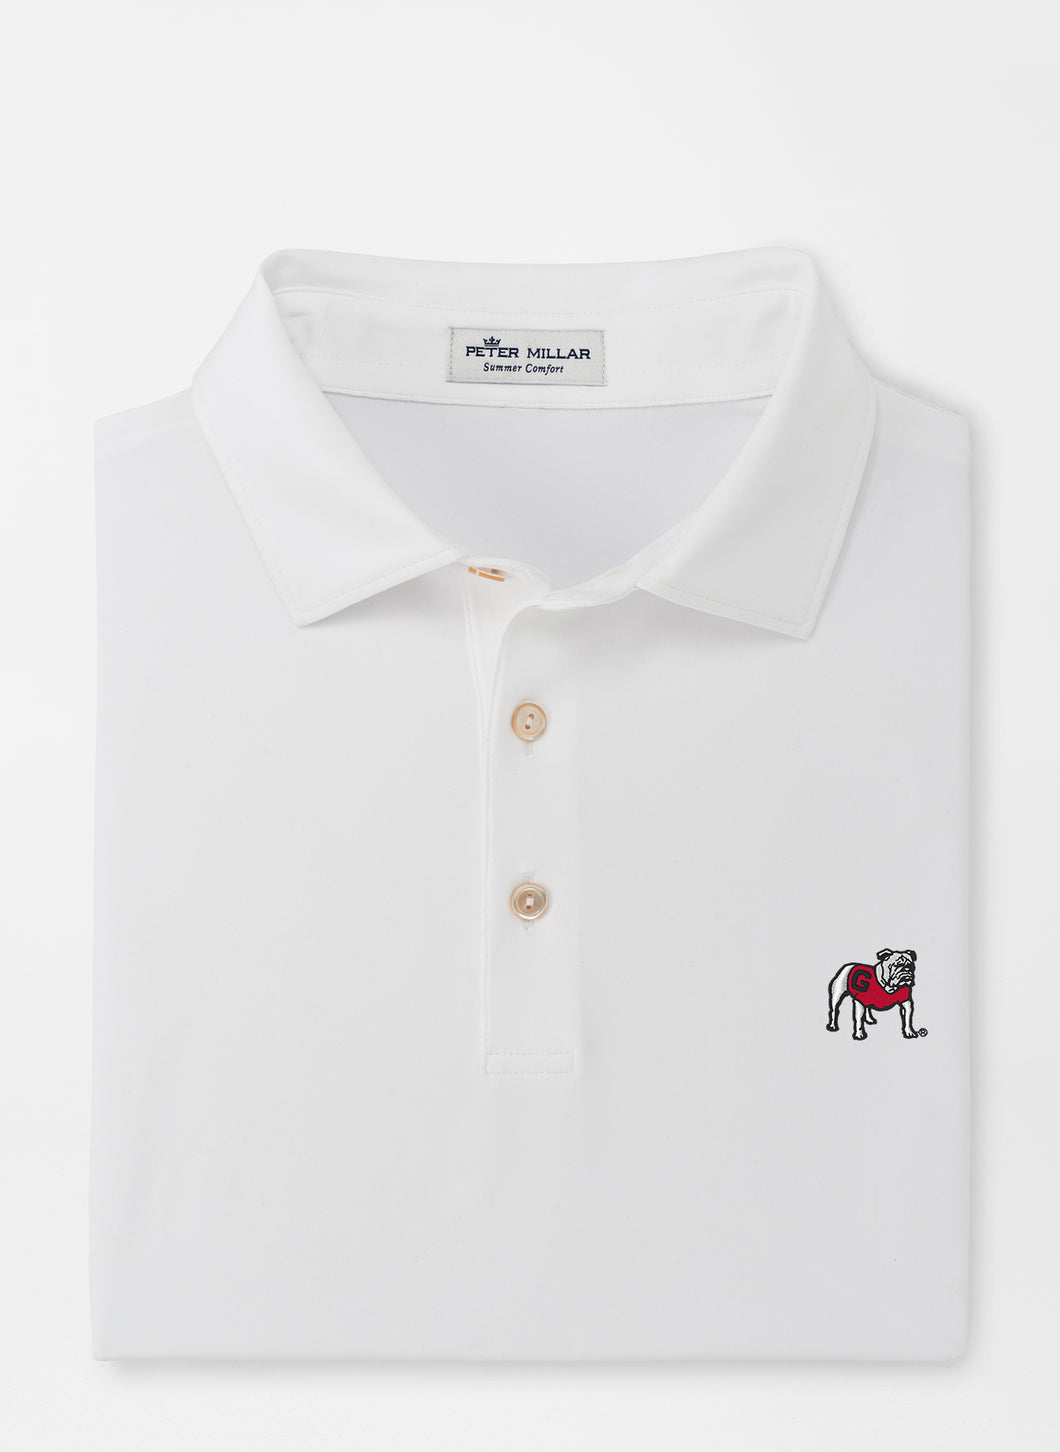 Peter Millar Georgia Standing Bulldog Performance Polo in White